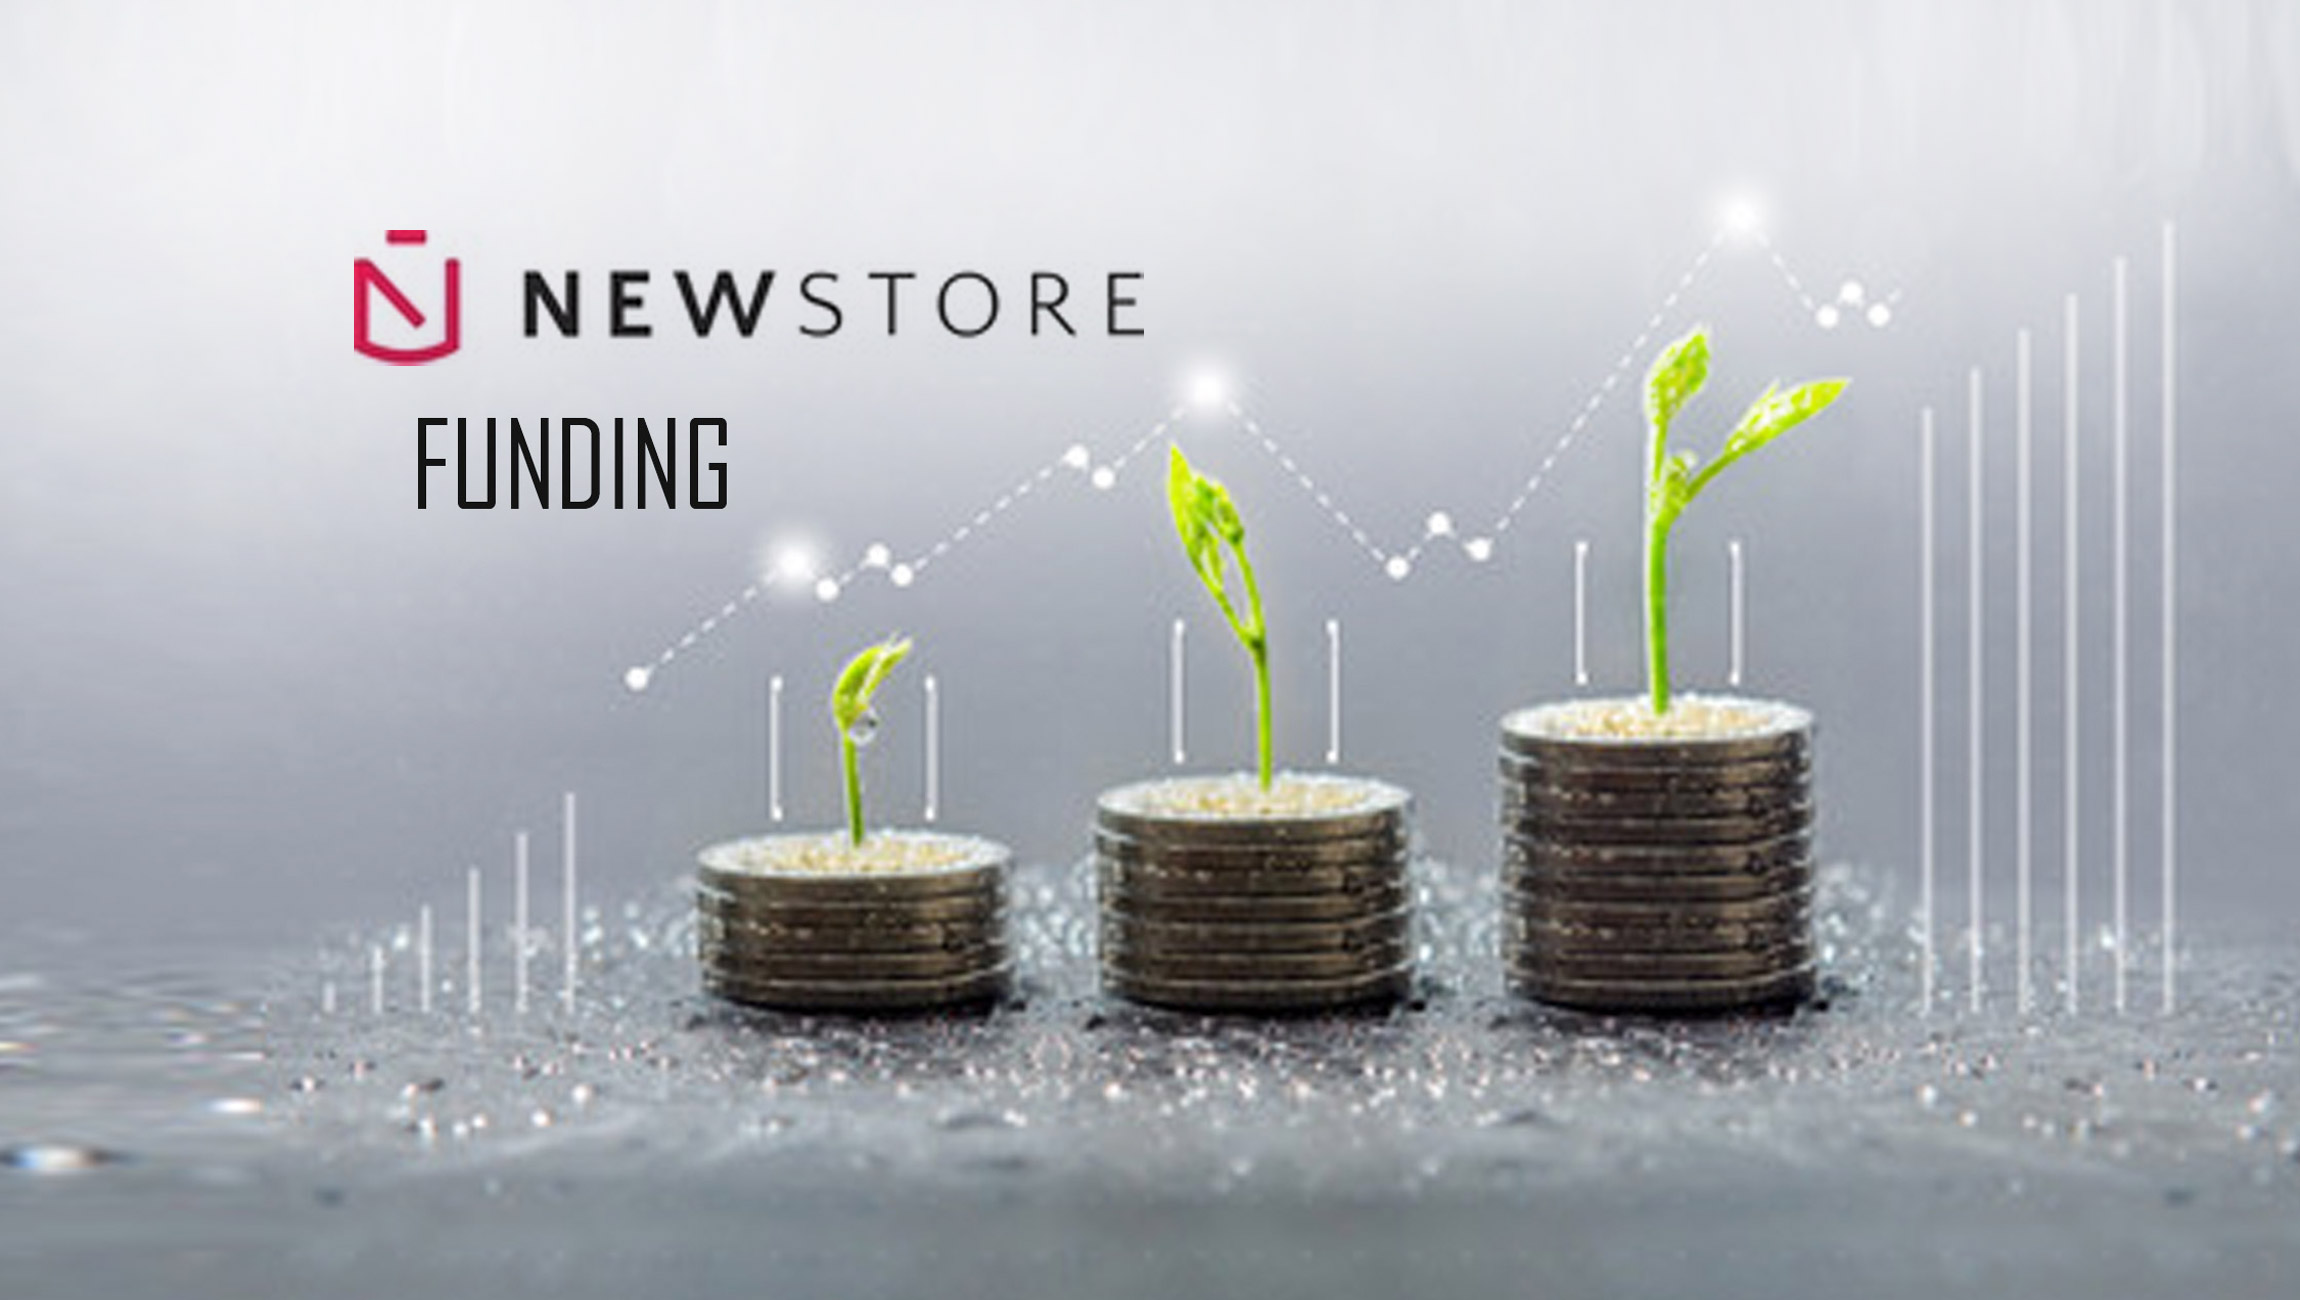 NewStore Raises $45 Million in Series B-1 Financing Round to Accelerate Company Growth